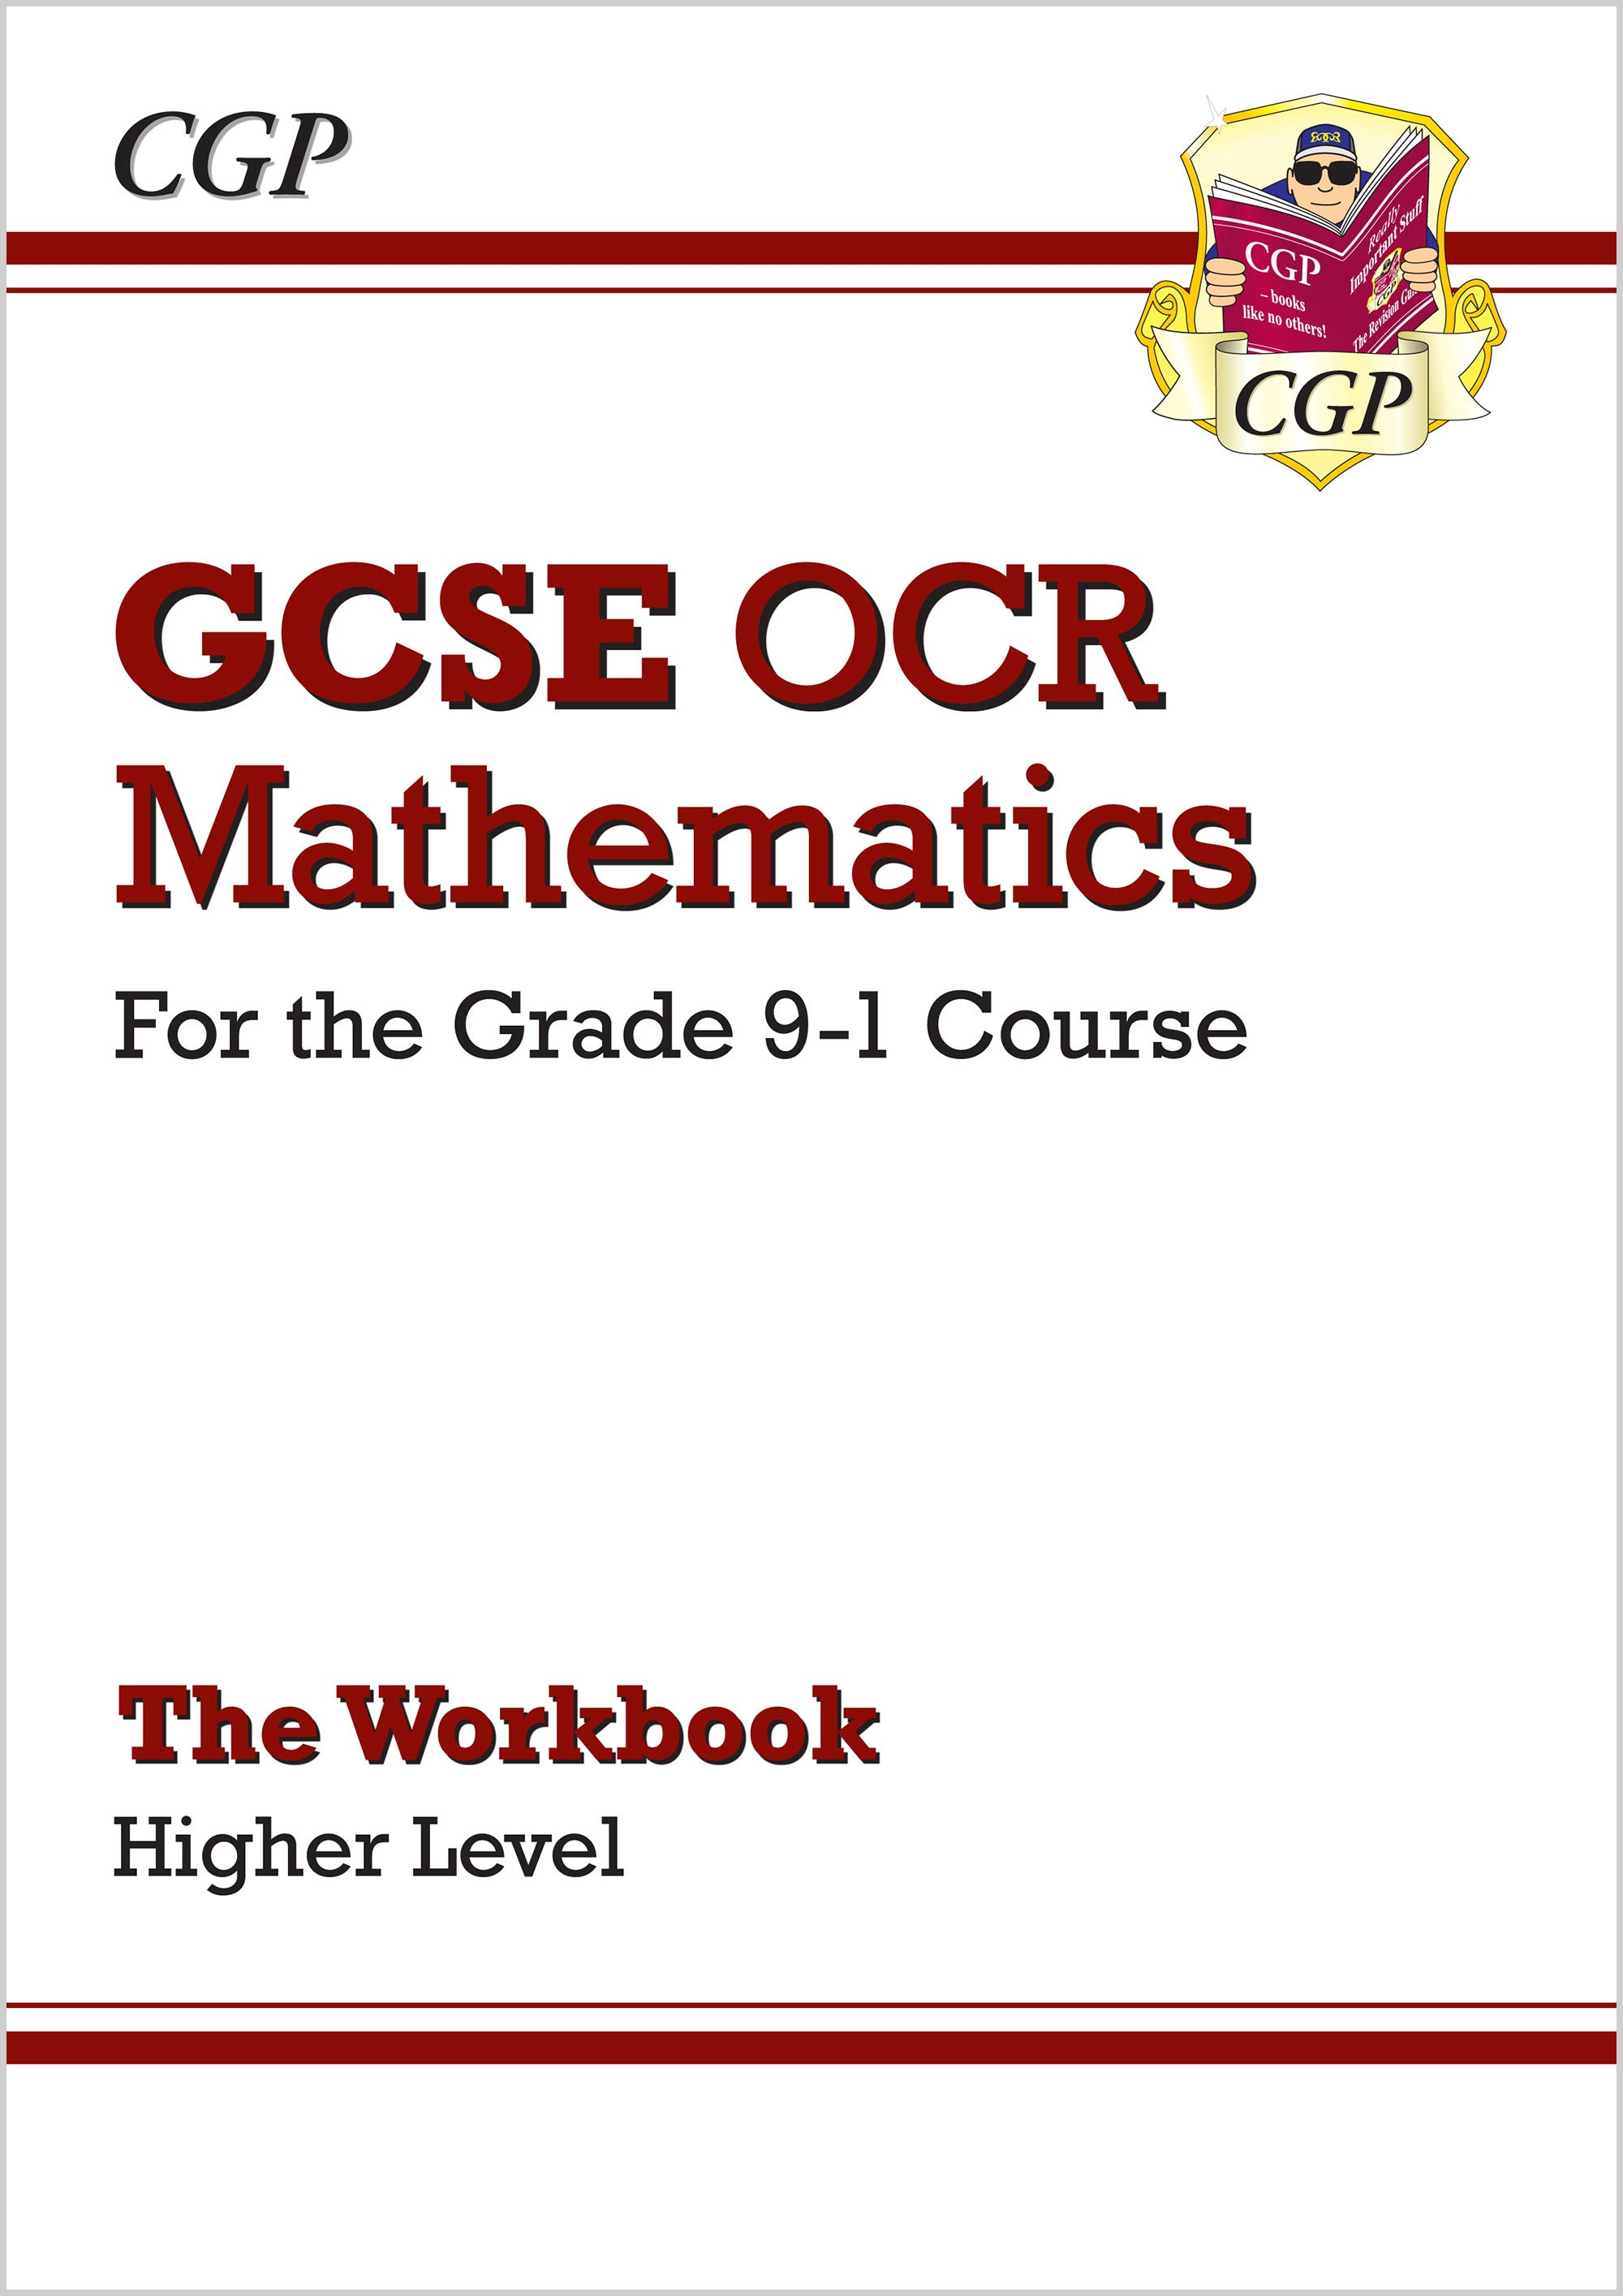 MCHW46 - GCSE Maths OCR Workbook: Higher - for the Grade 9-1 Course